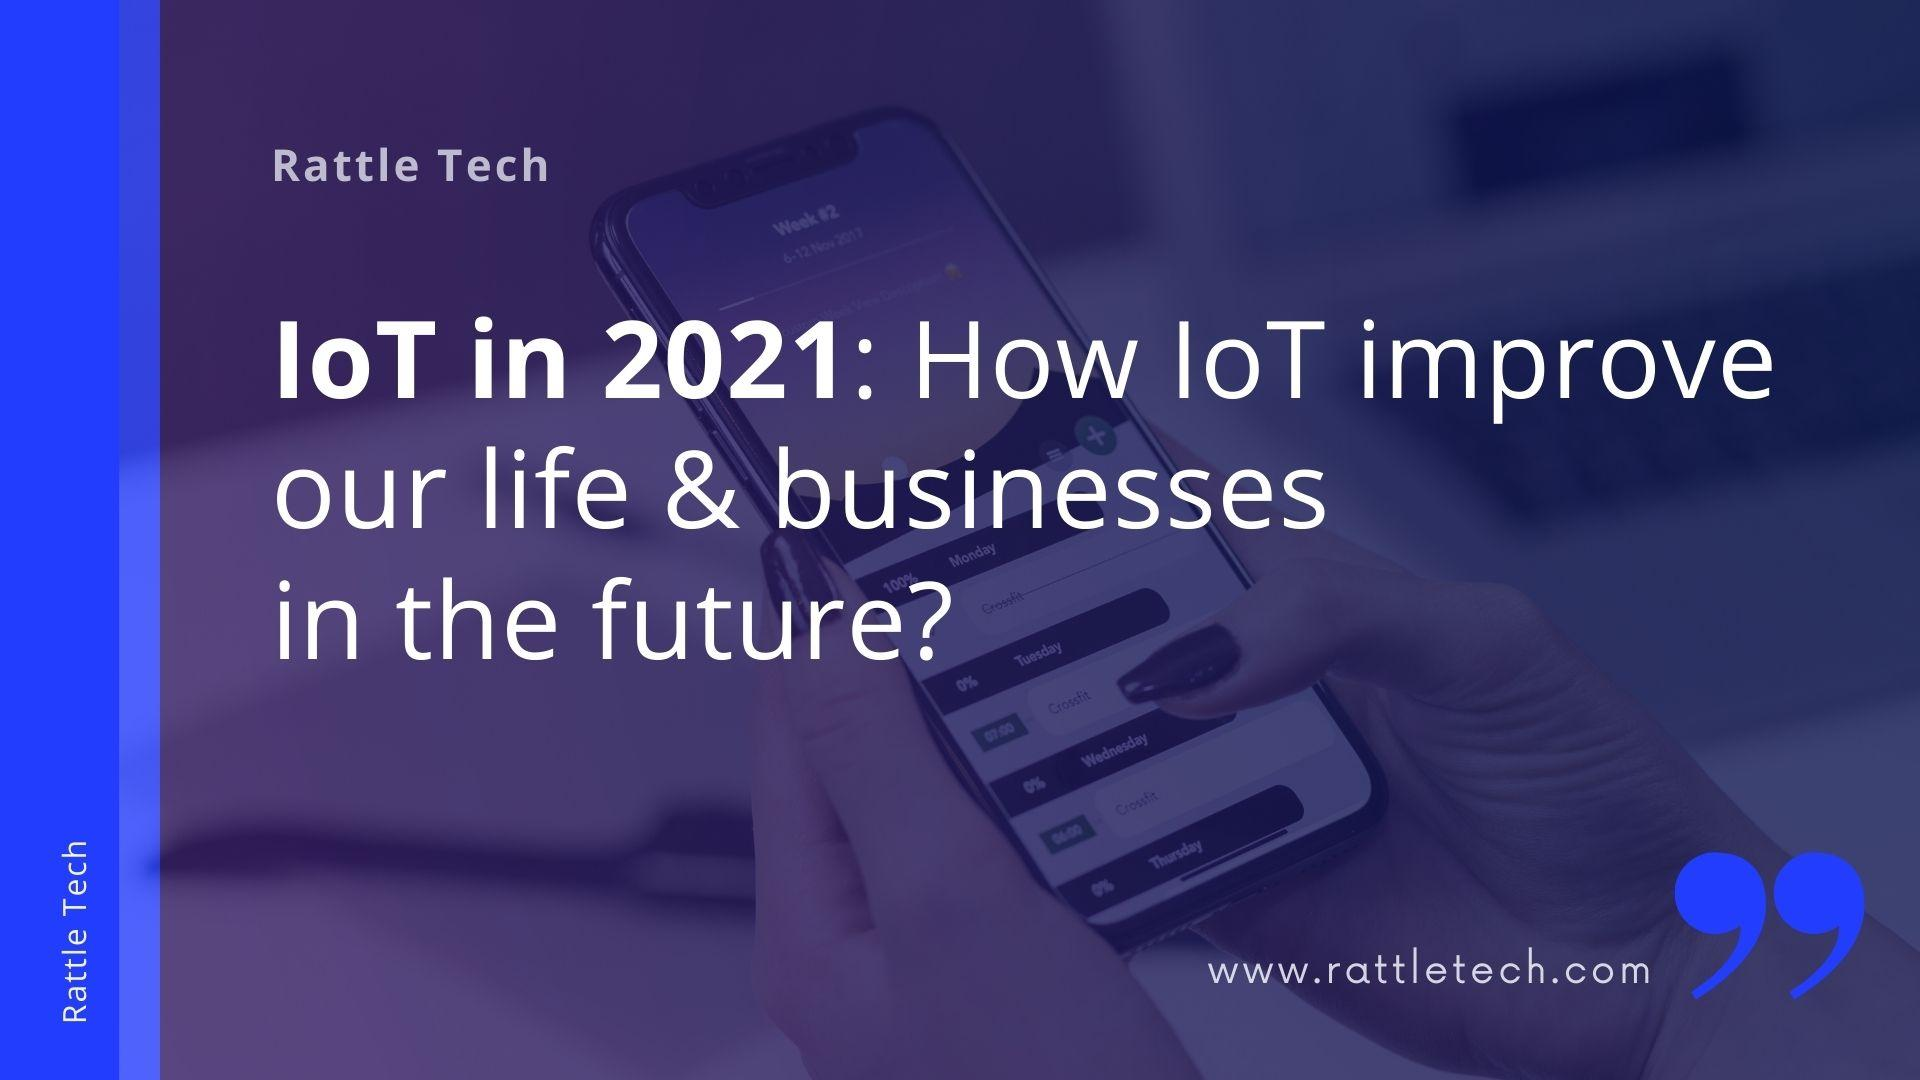 How-IoT-improve-our-life-businesses-in-the-future